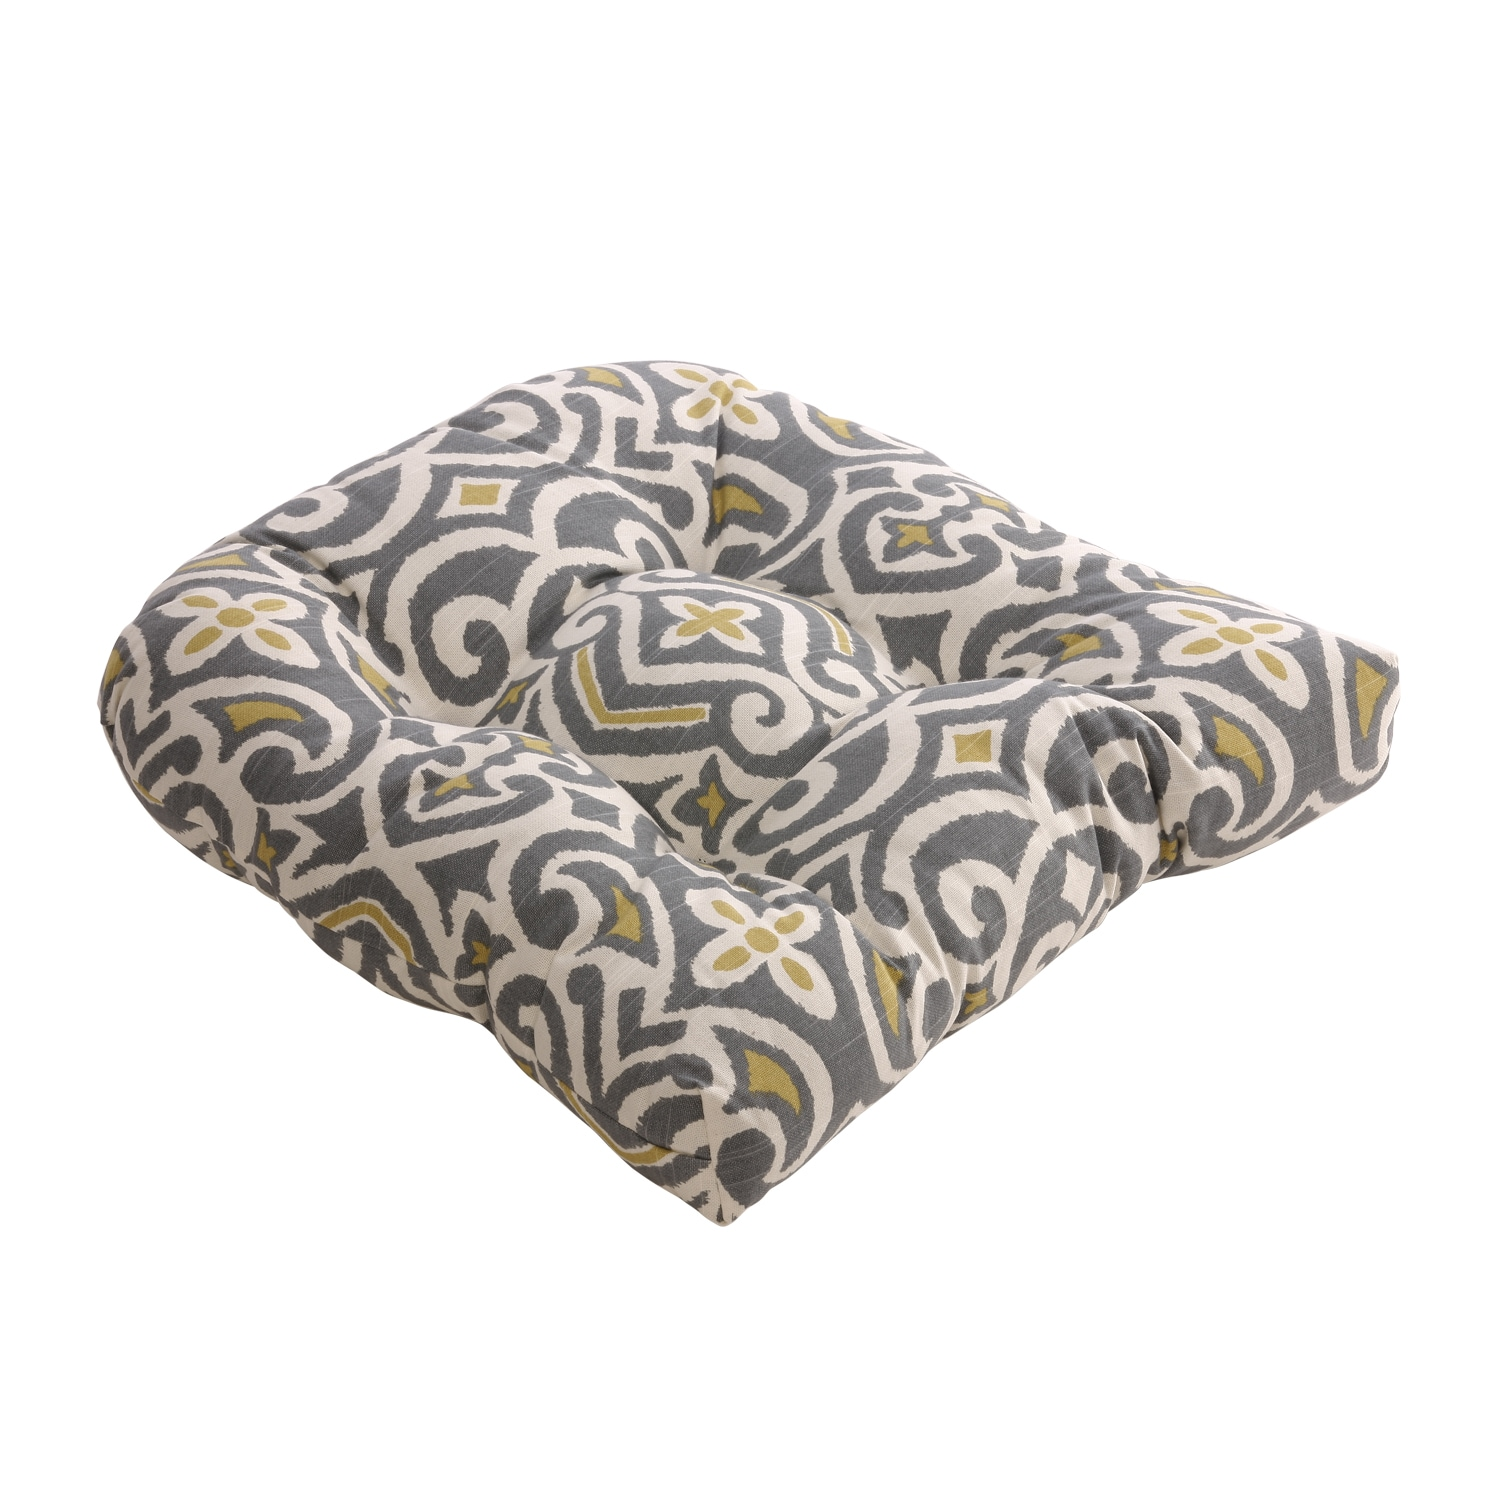 Garden Furniture Cushions Storage picture on Garden Furniture Cushions Storageproduct.html with Garden Furniture Cushions Storage, sofa 96d1fe248494a9a7772119c4696e57fe